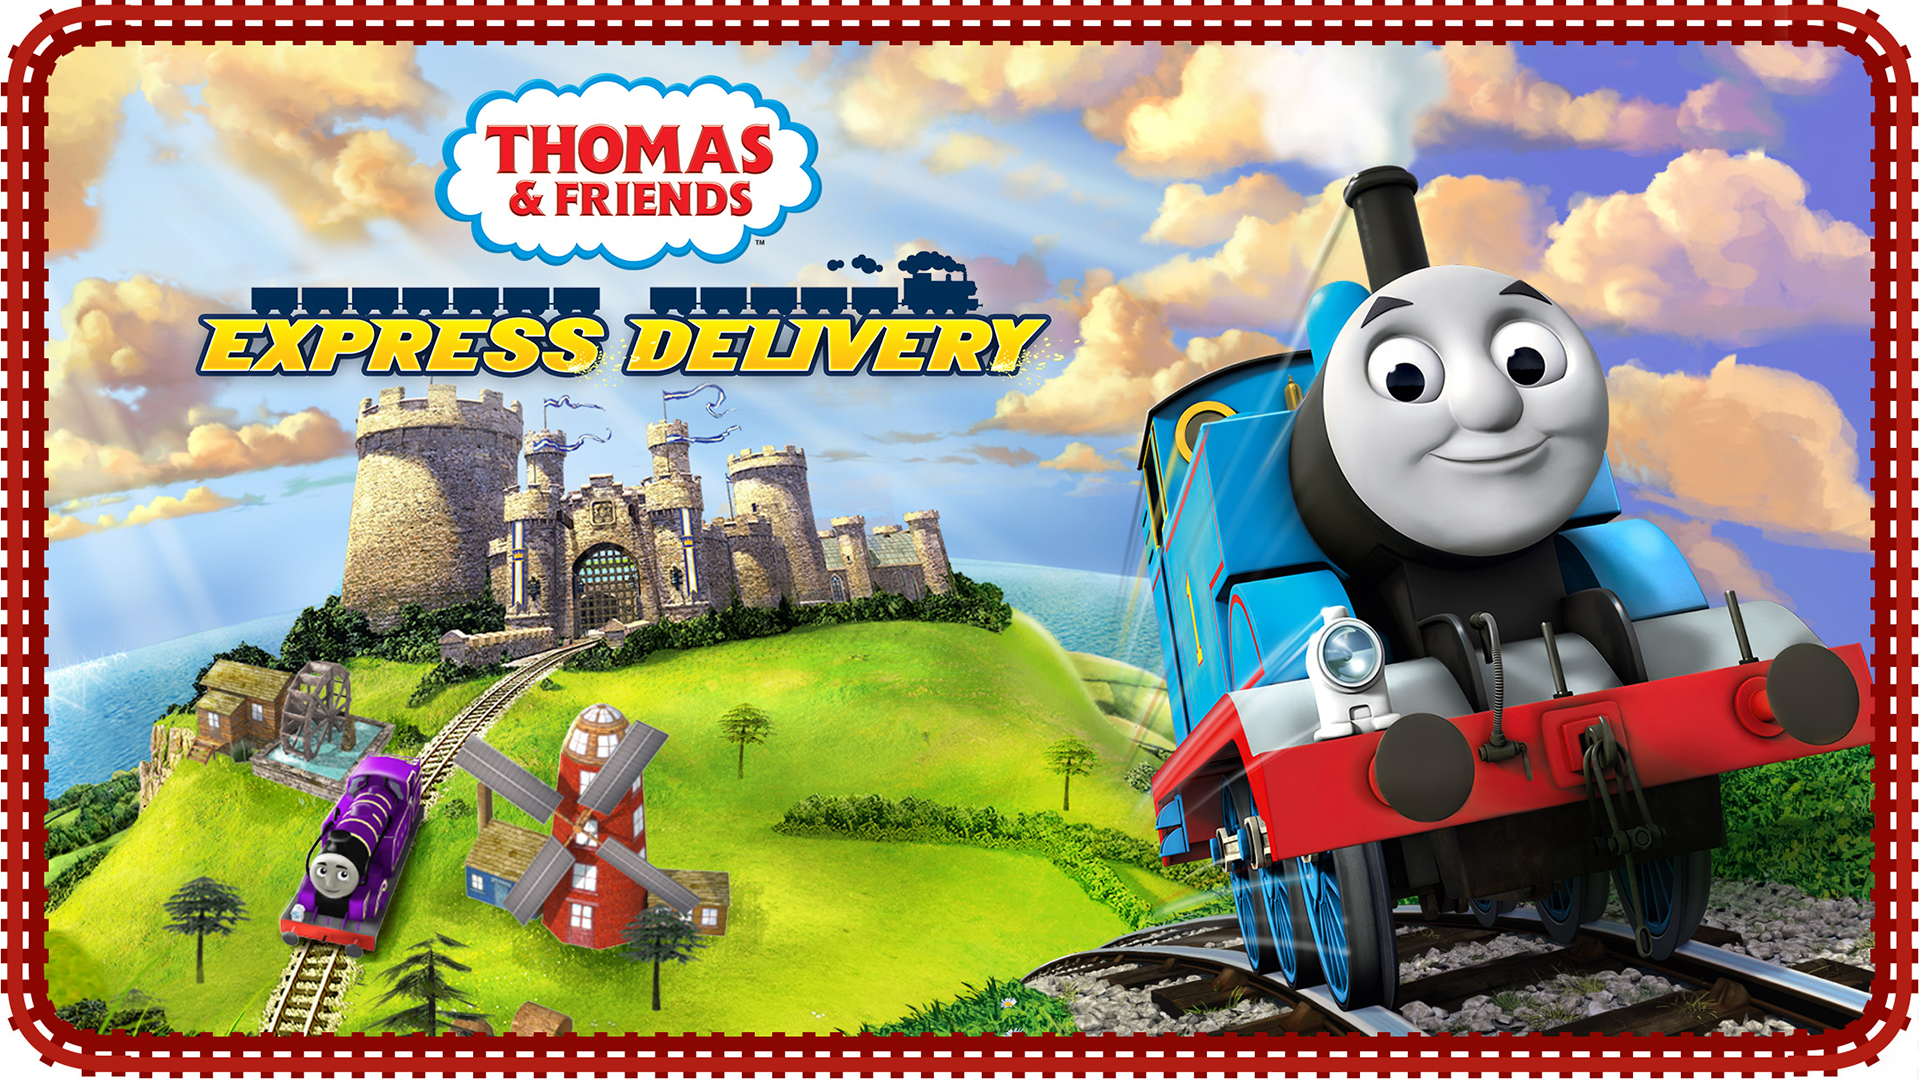 Thomas & Friends: Express Delivery screenshot 11